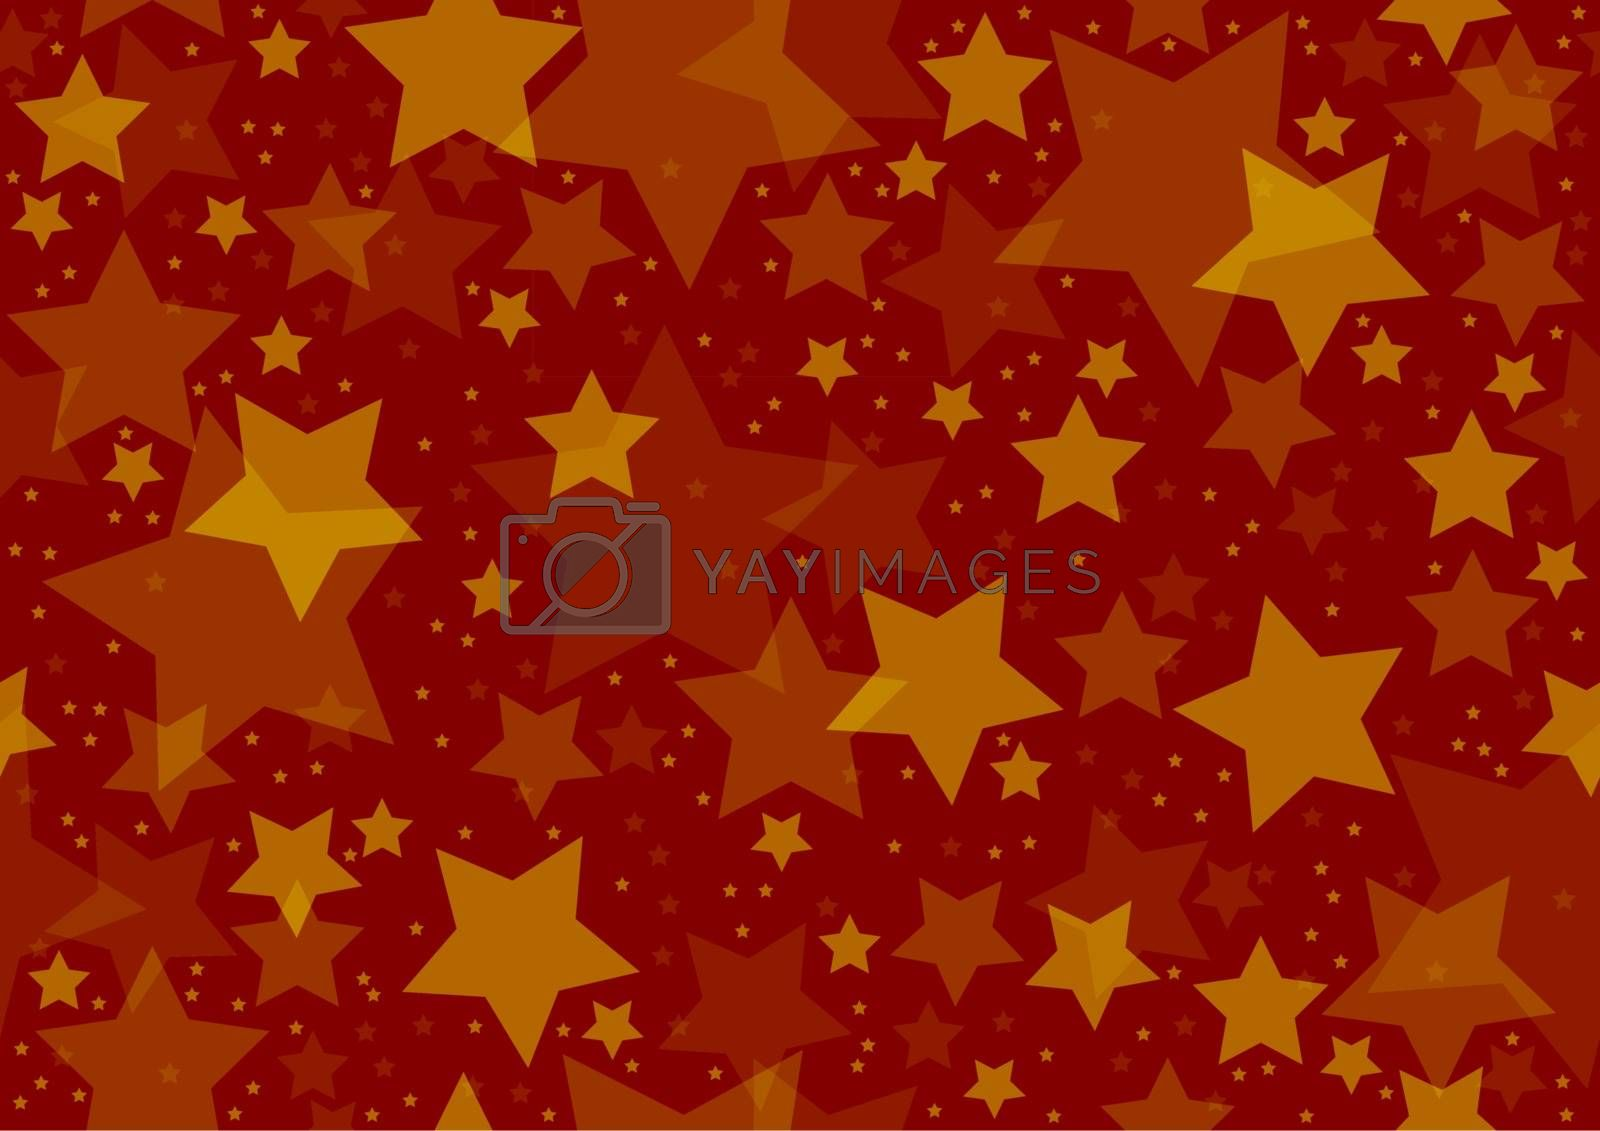 Stars Texture - Repetitive Background Illustration, Vector